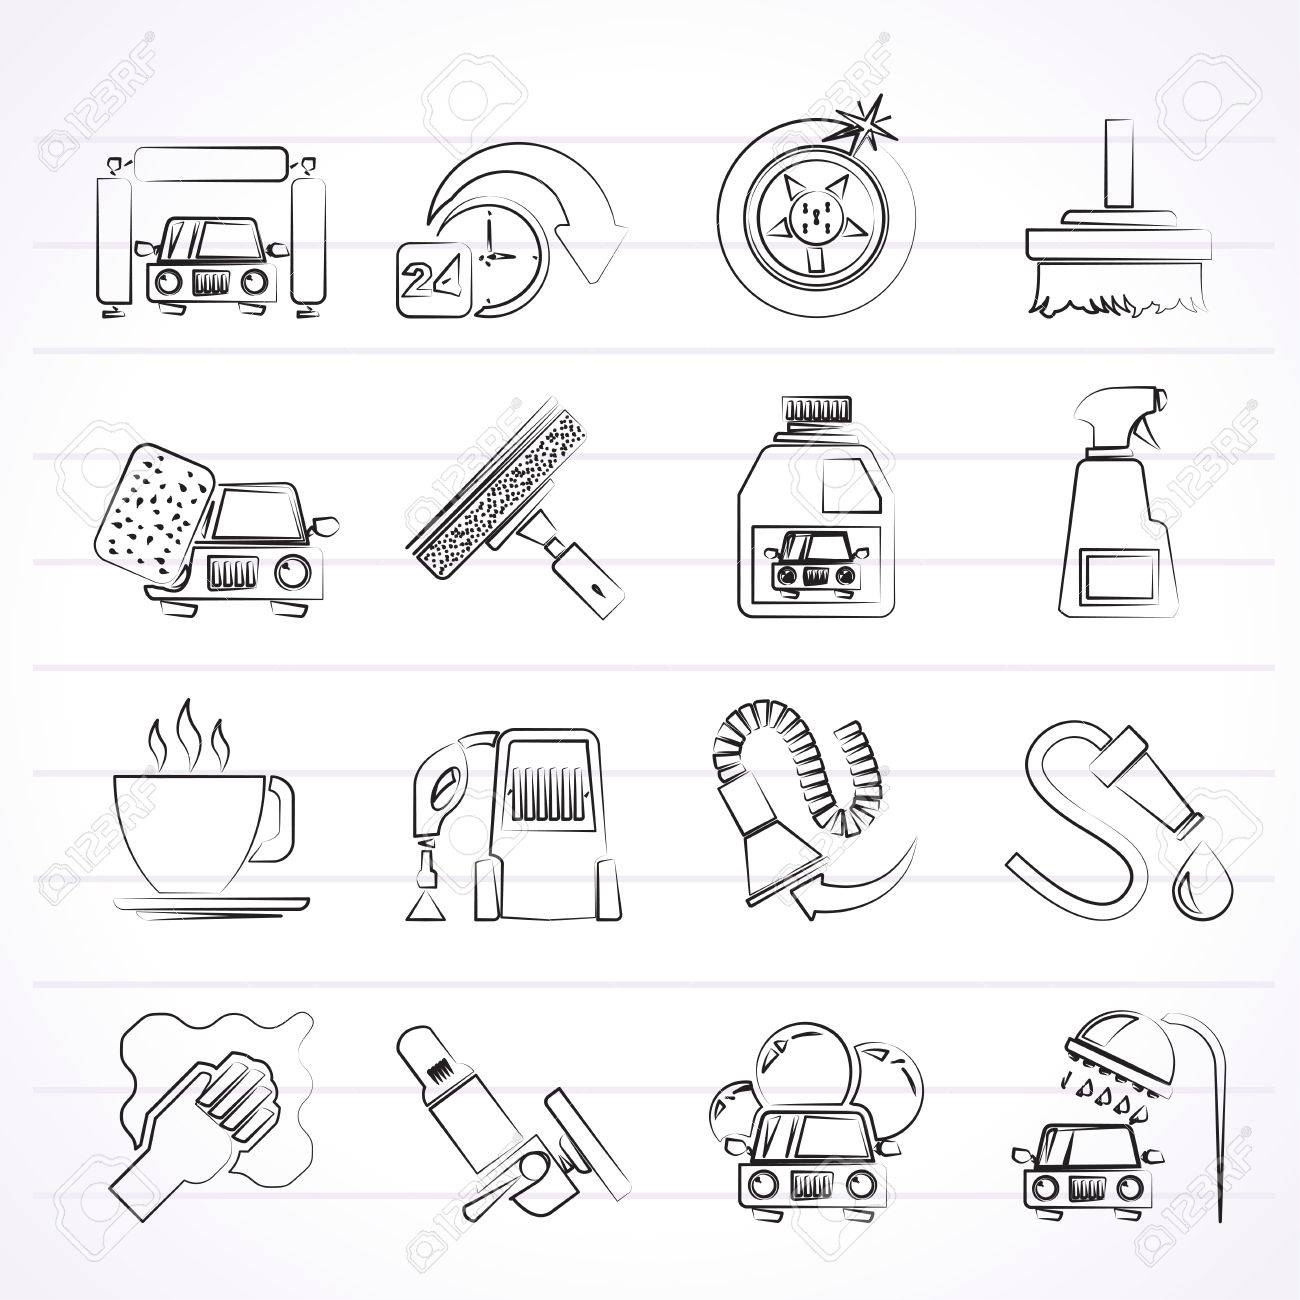 car wash objects and icons - vector icon set Stock Vector - 24914643